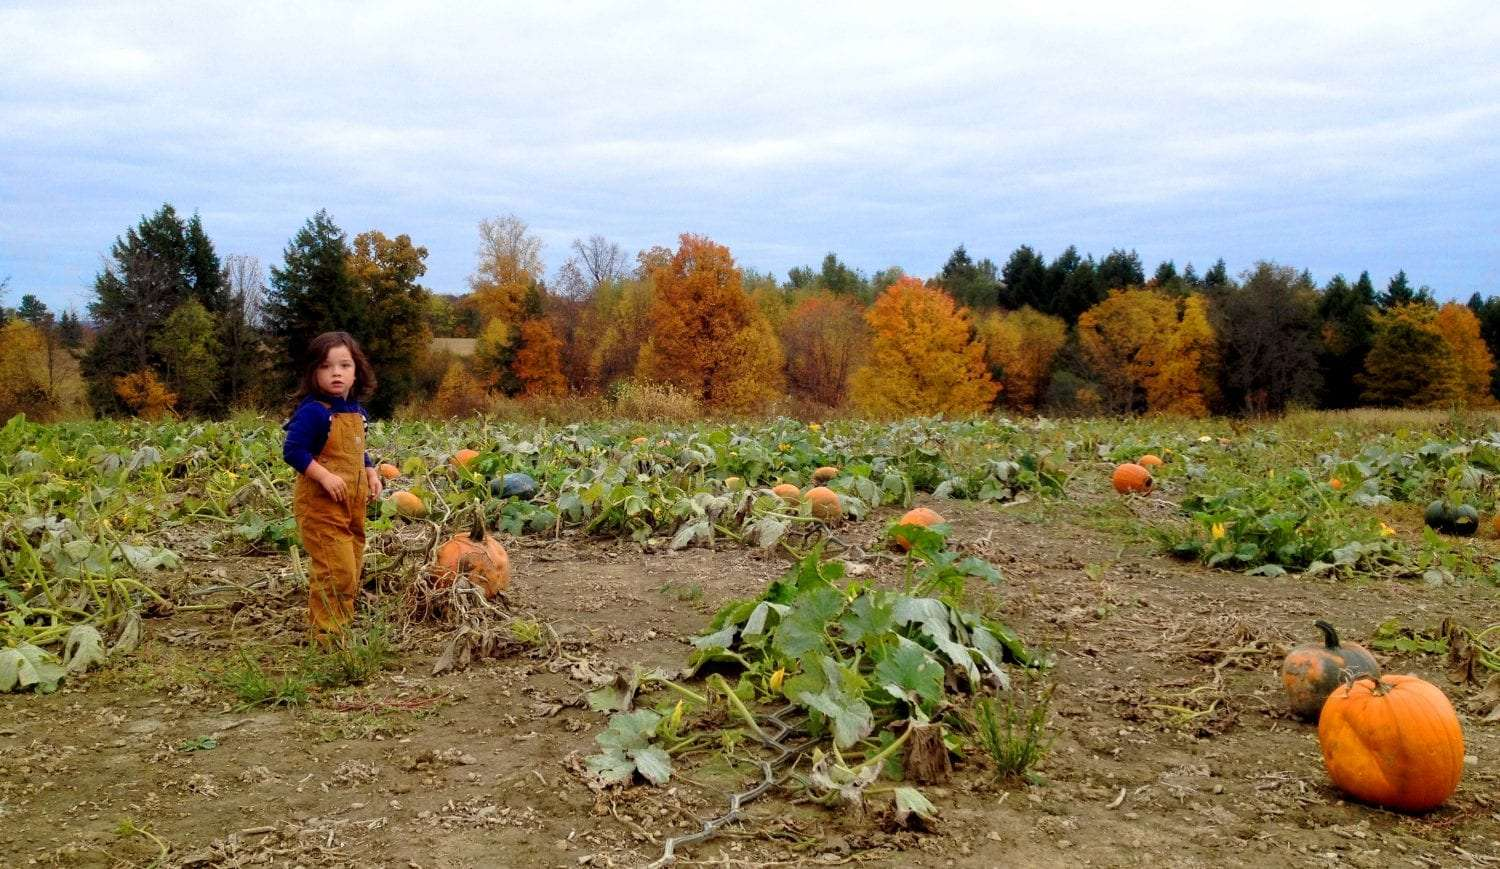 a toddler wearing overall bibs wanders through a pumpkin patch, leaves on many of the trees changing behind him.